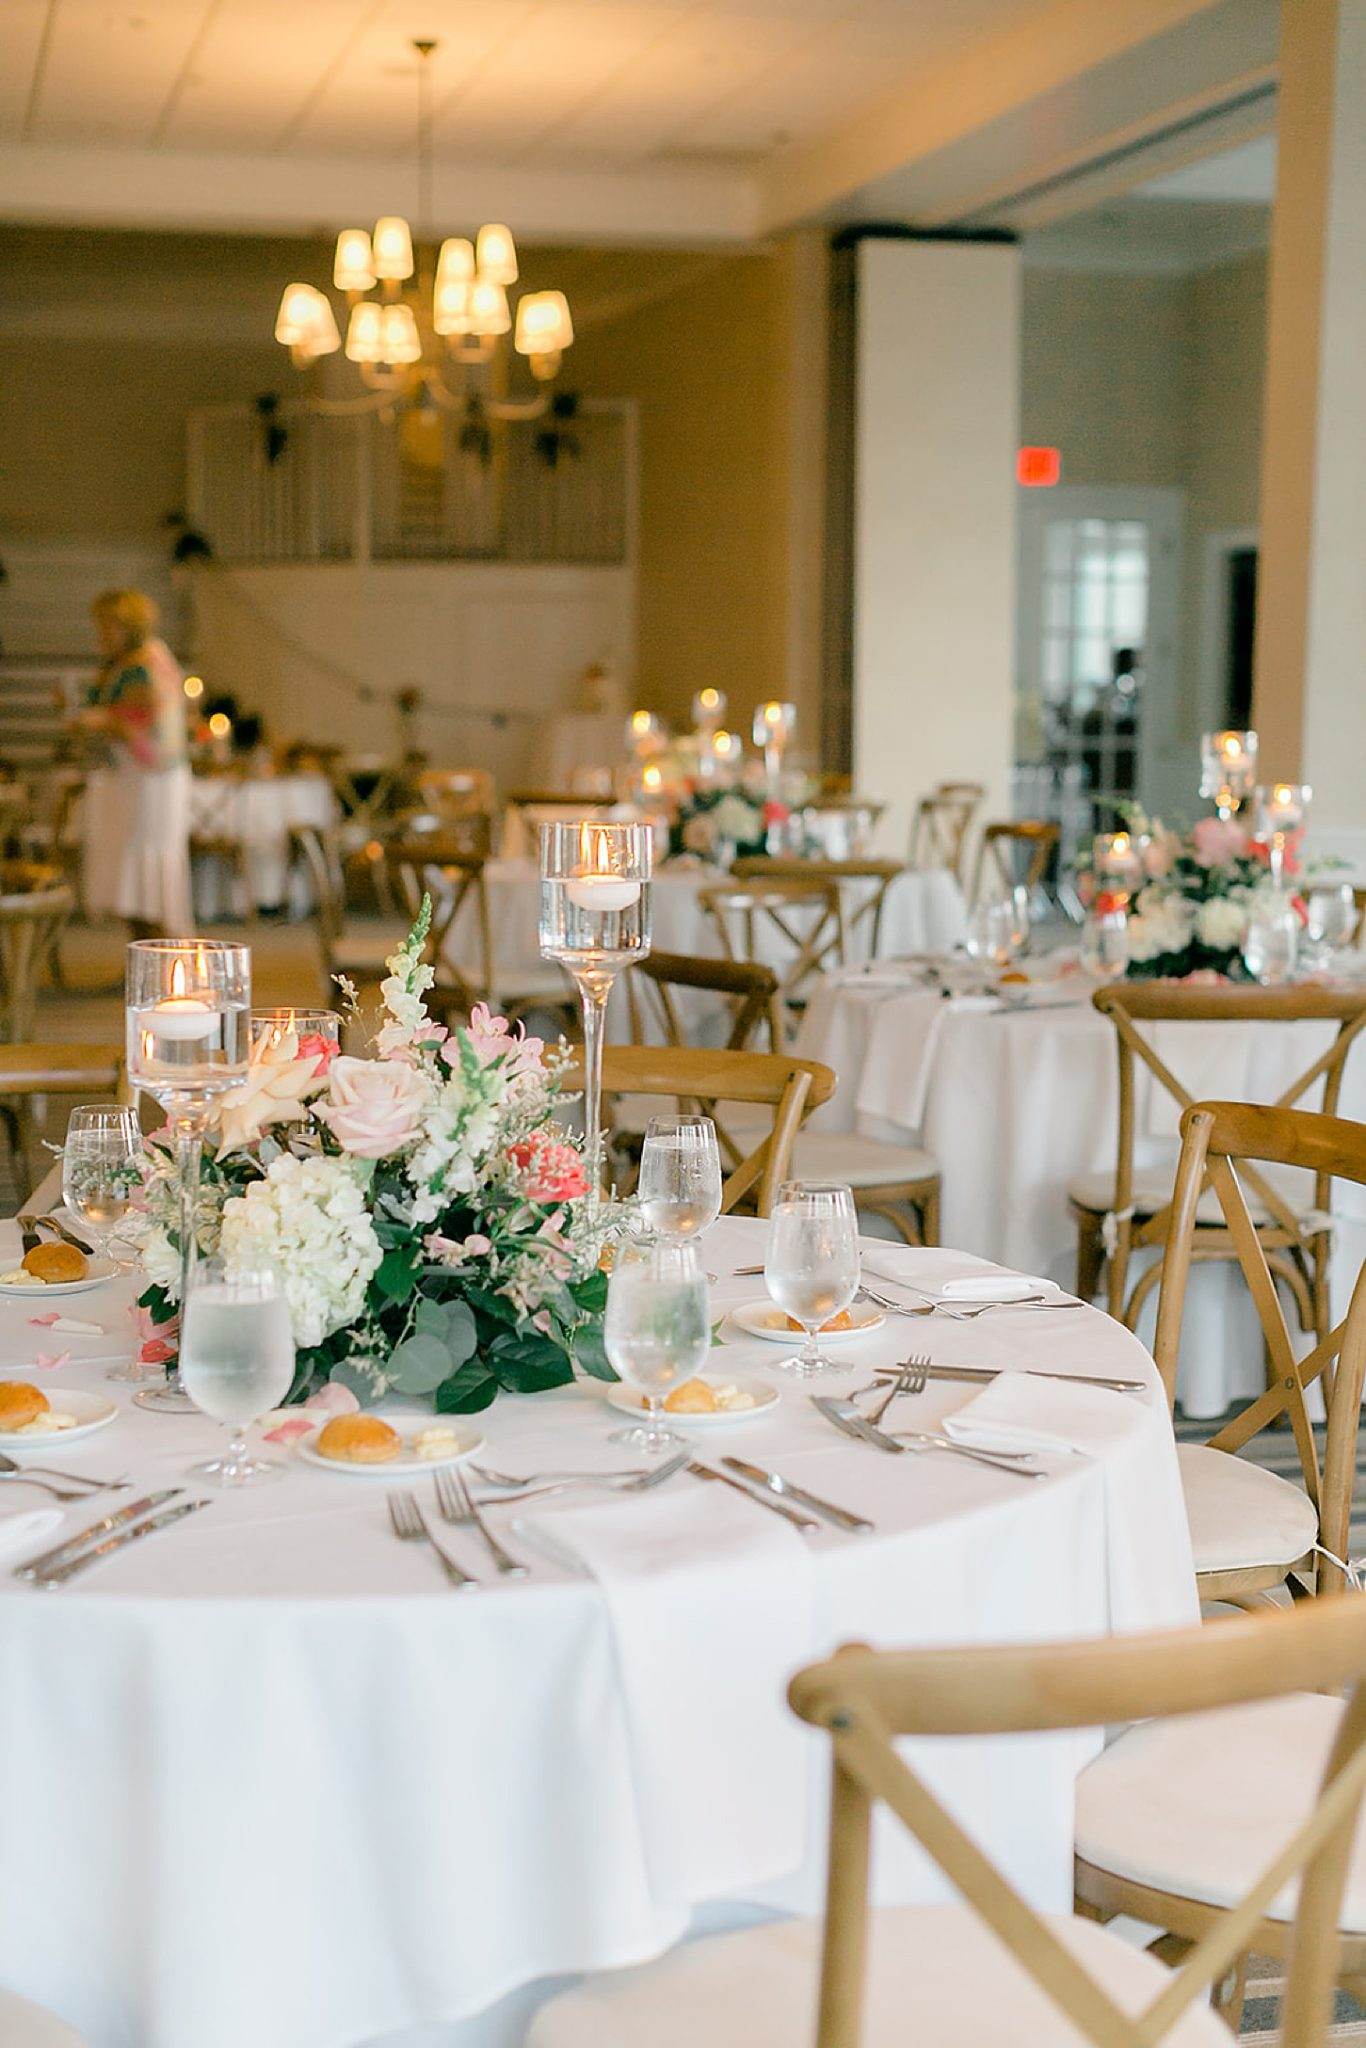 Linwood Country Club Summer Wedding Photography Studio by Magdalena Studios Jenn Kyle 0051 scaled